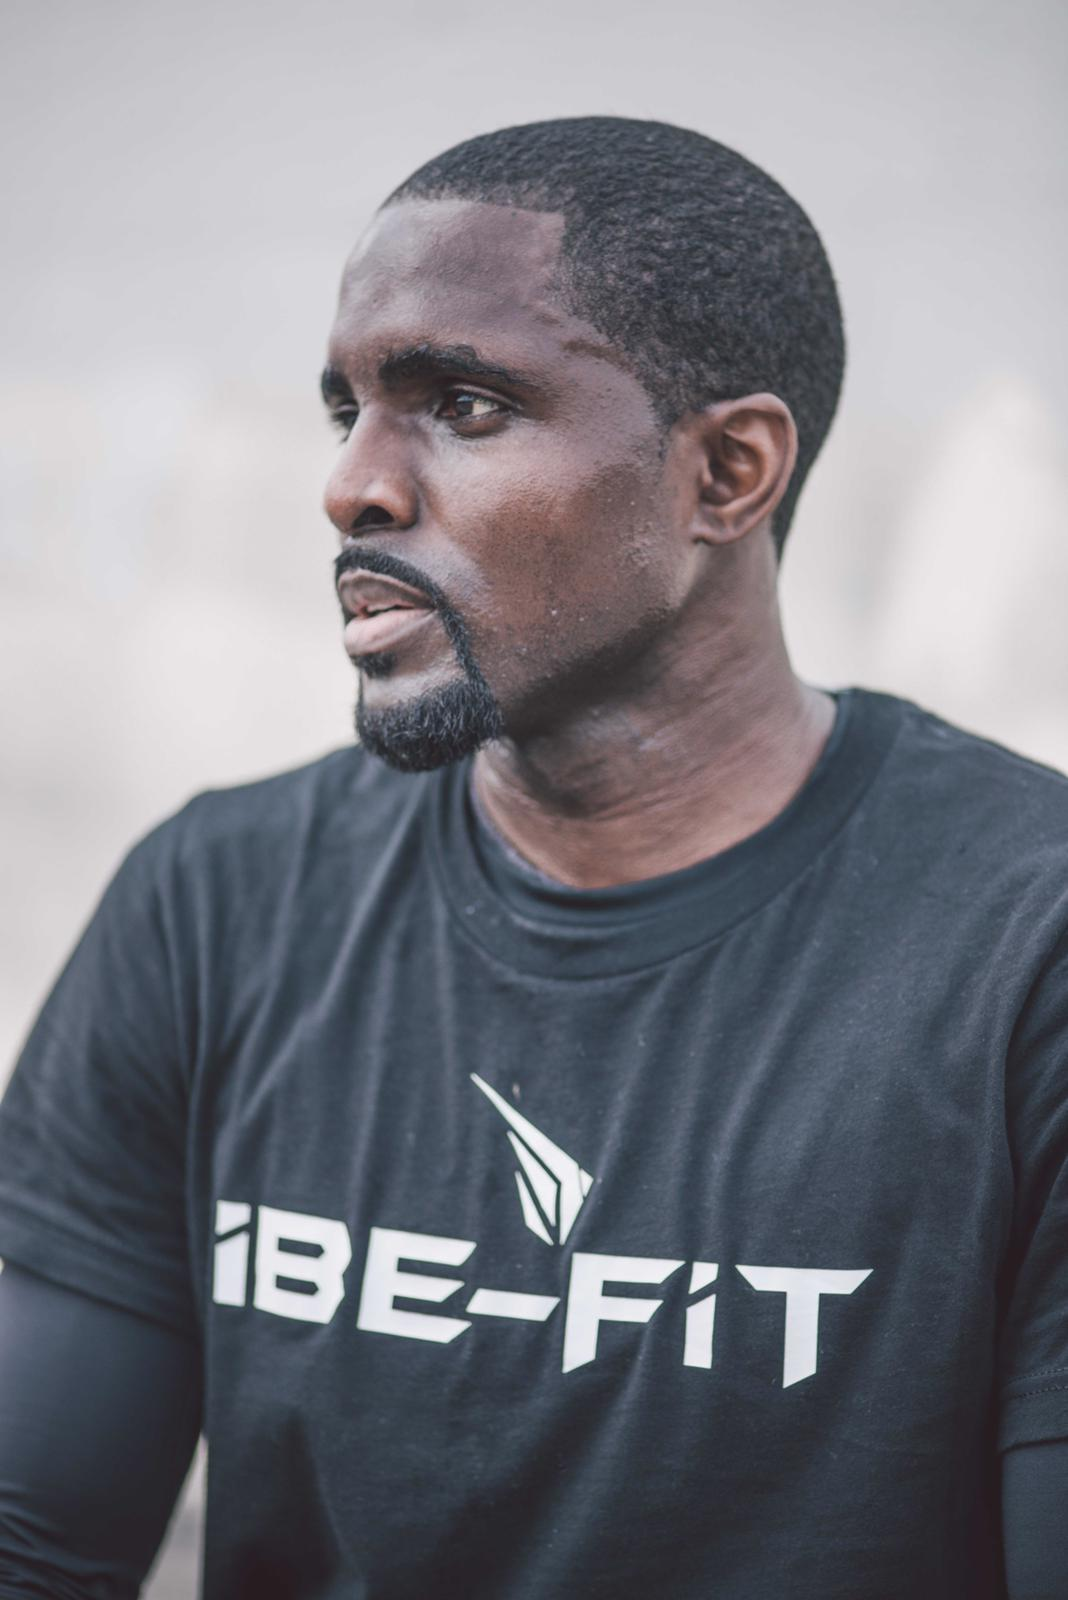 My name is Oscar Ibe Kemjika. - I am the founder of iBE-FiT.